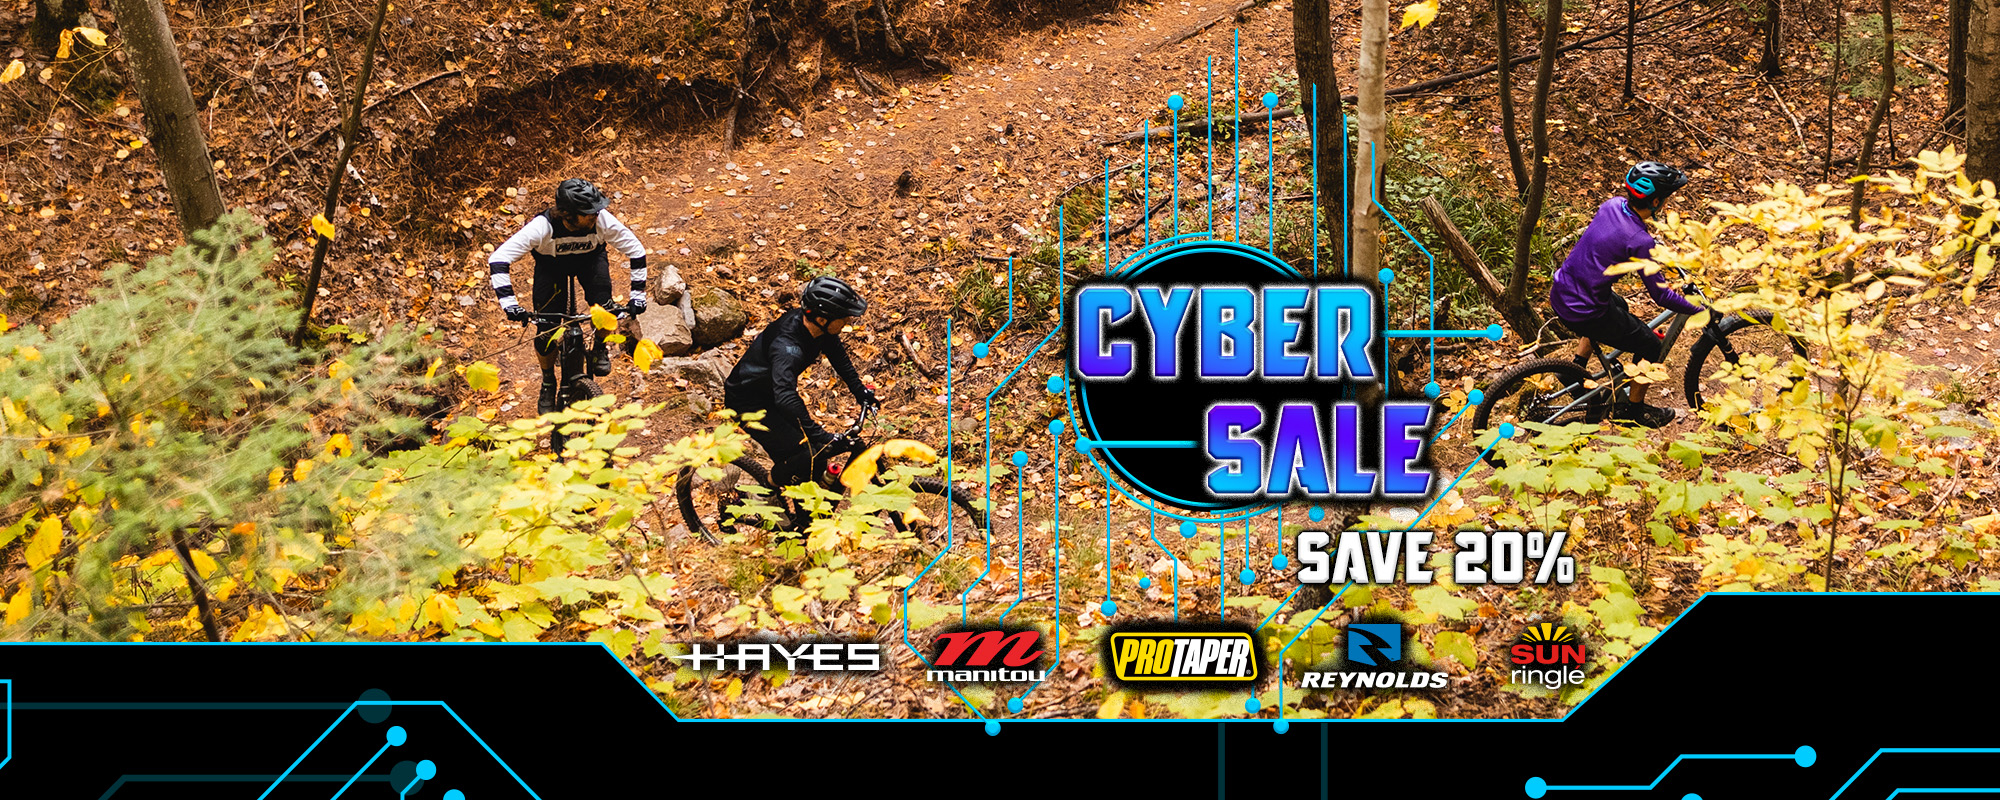 Hayes Bicycle Cyber Sale 2020